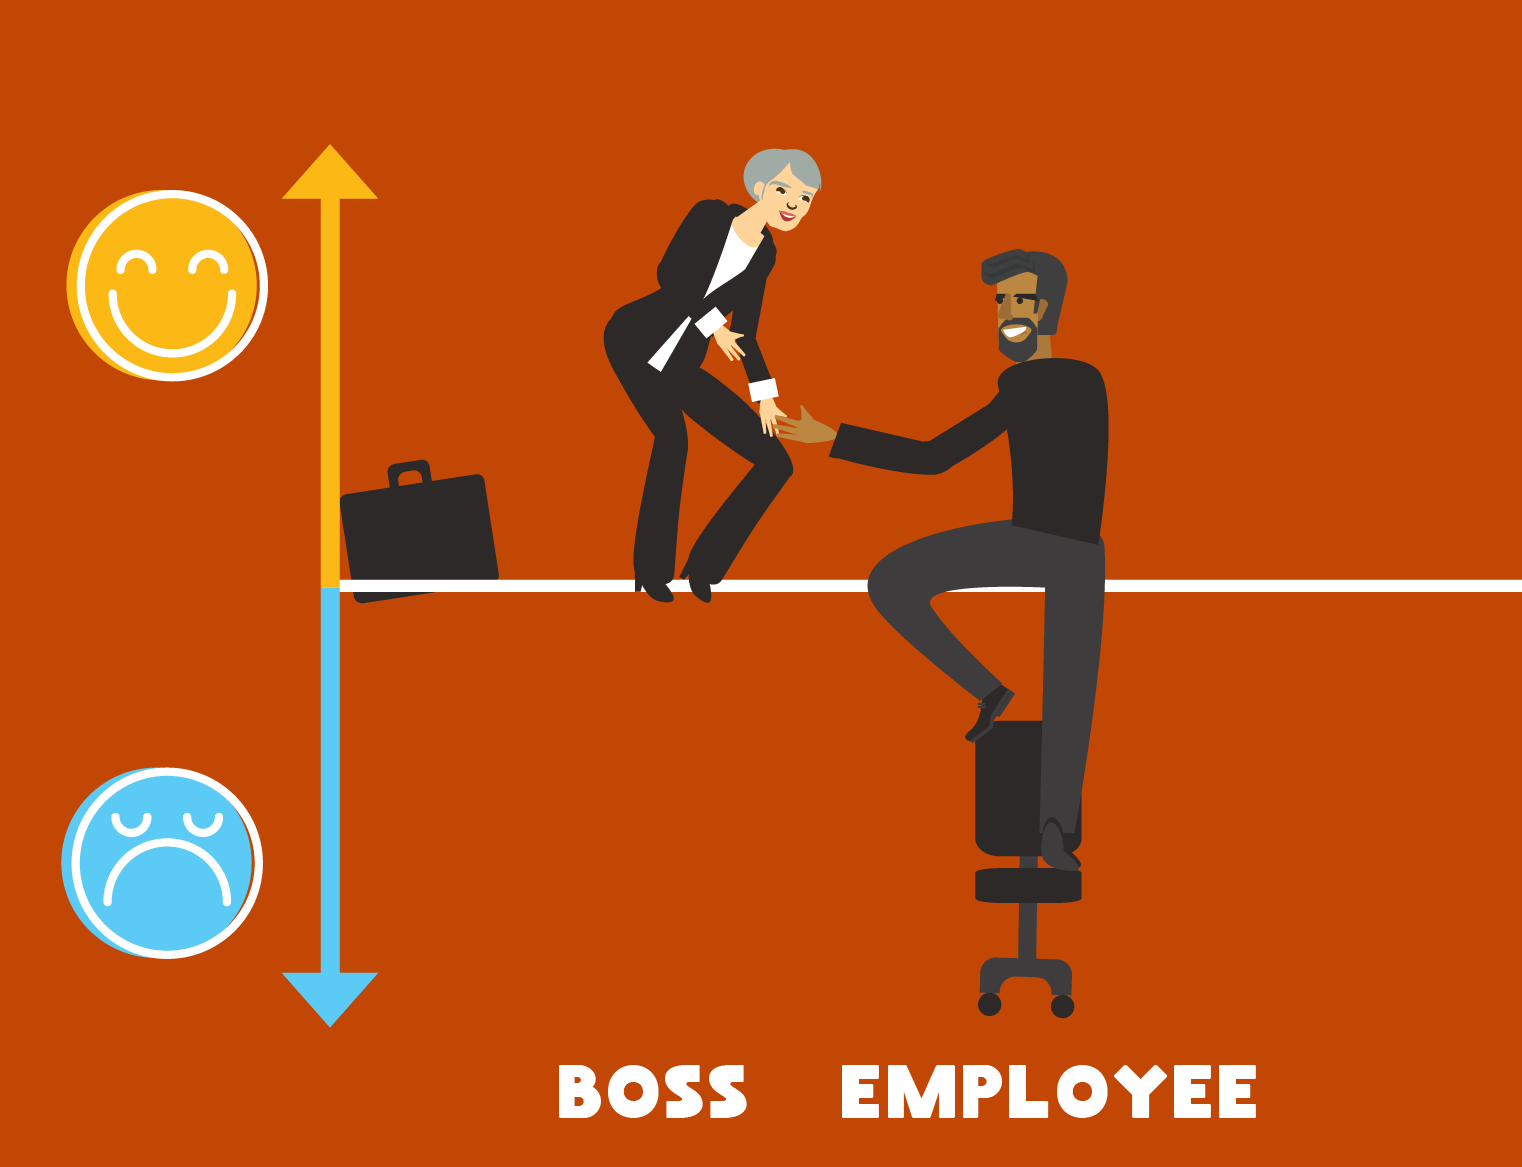 Illustration of a boss working to improve employee happiness.